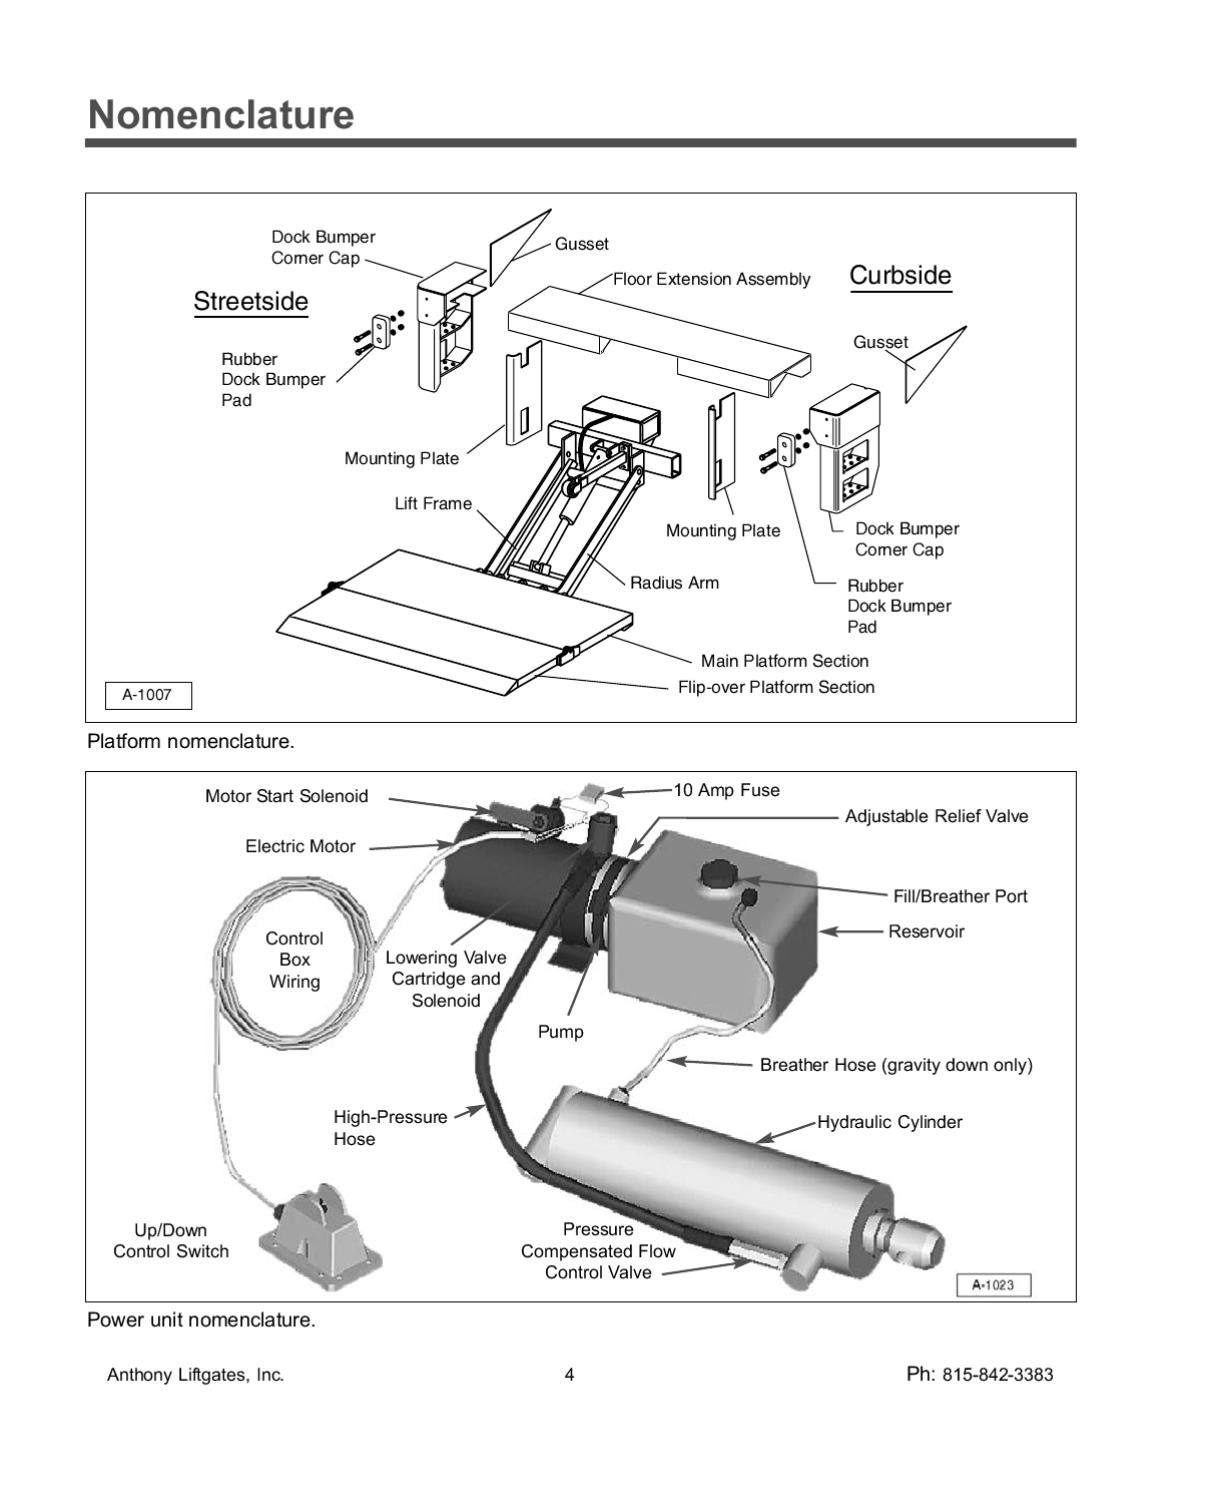 liftgate wiring diagram anthony liftgate switch wiring diagram a3 wiring diagram maxon liftgate wiring diagram anthony liftgate switch wiring diagram